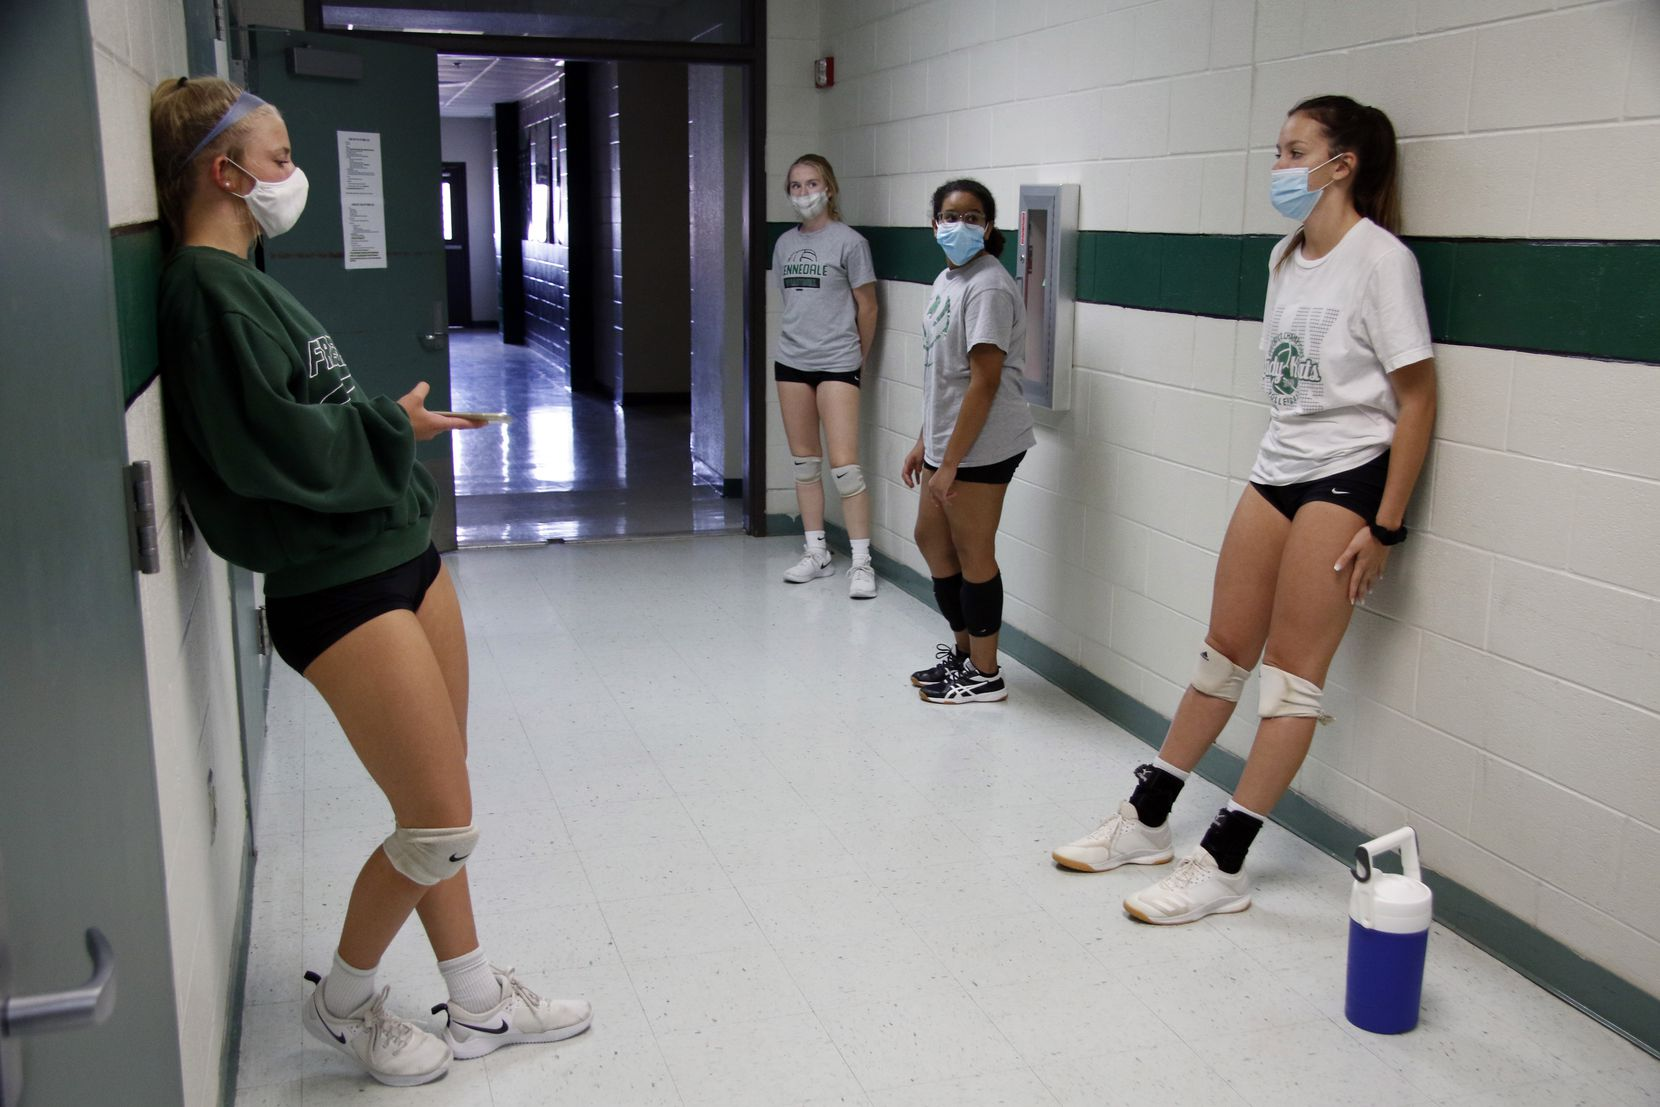 Kennedale volleyball players wait for practice to start Monday. (Steve Hamm/ Special Contributor)